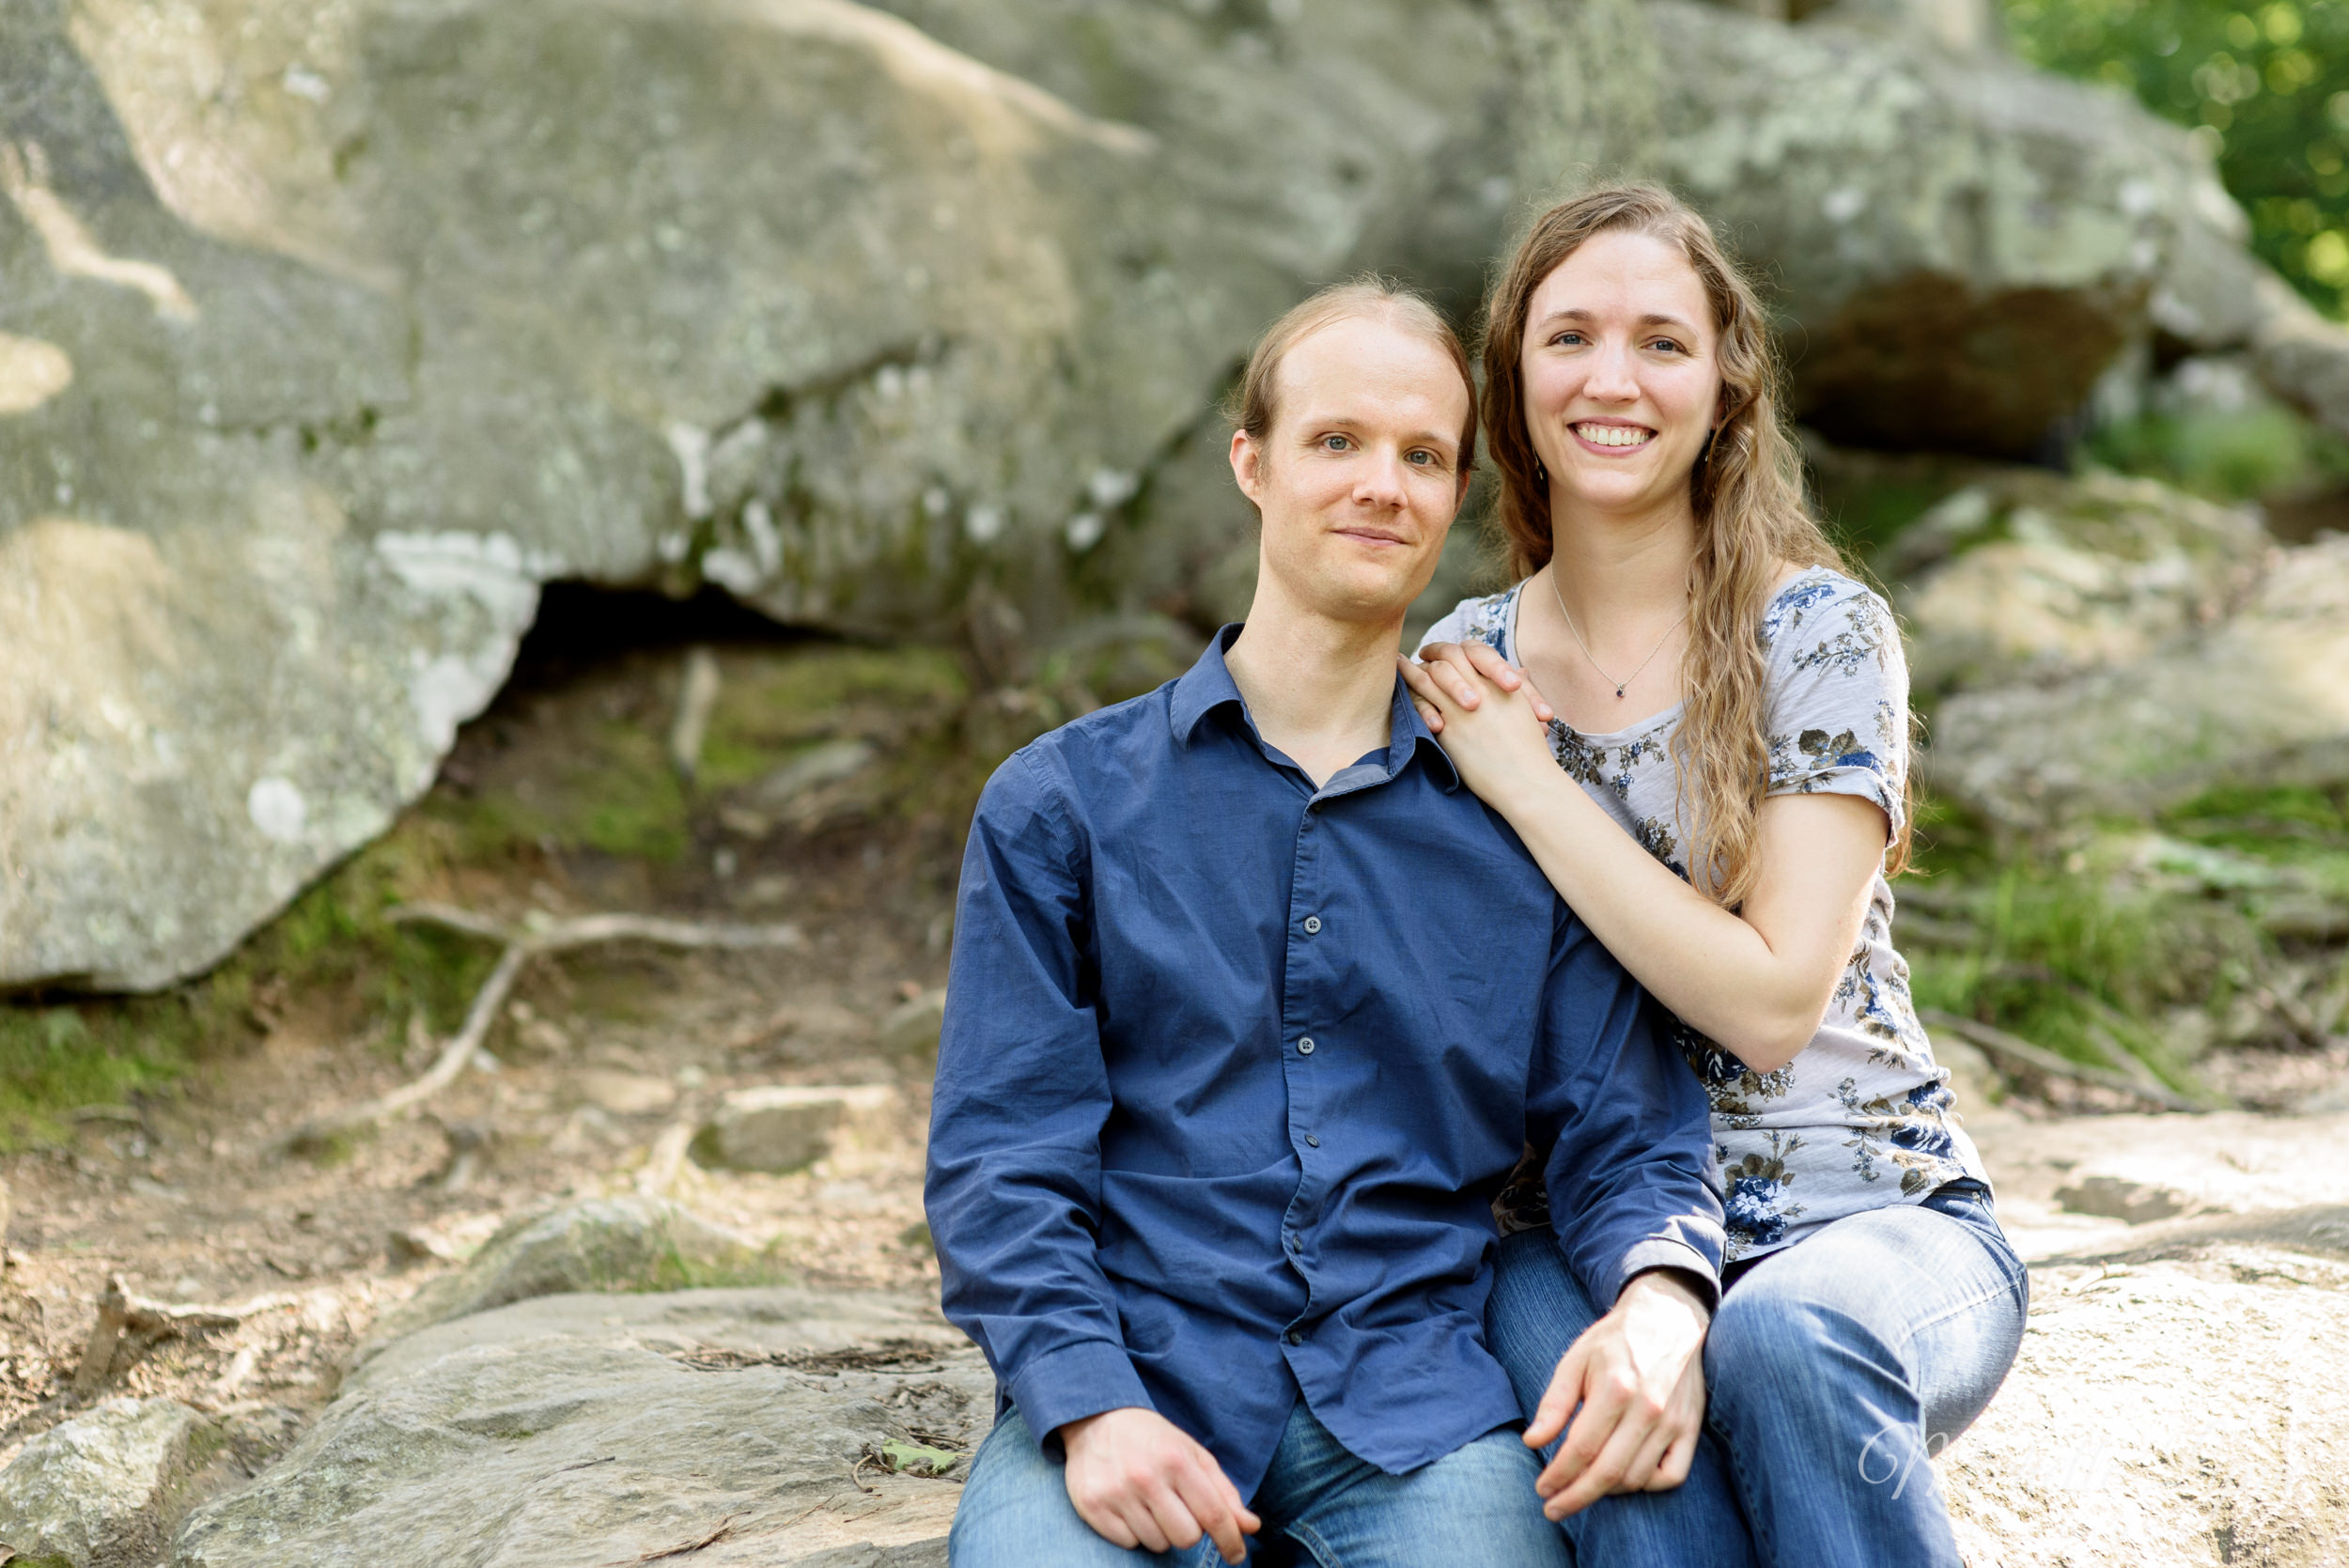 mlw-rocks-state-park-maryland-engagement-photos-16.jpg